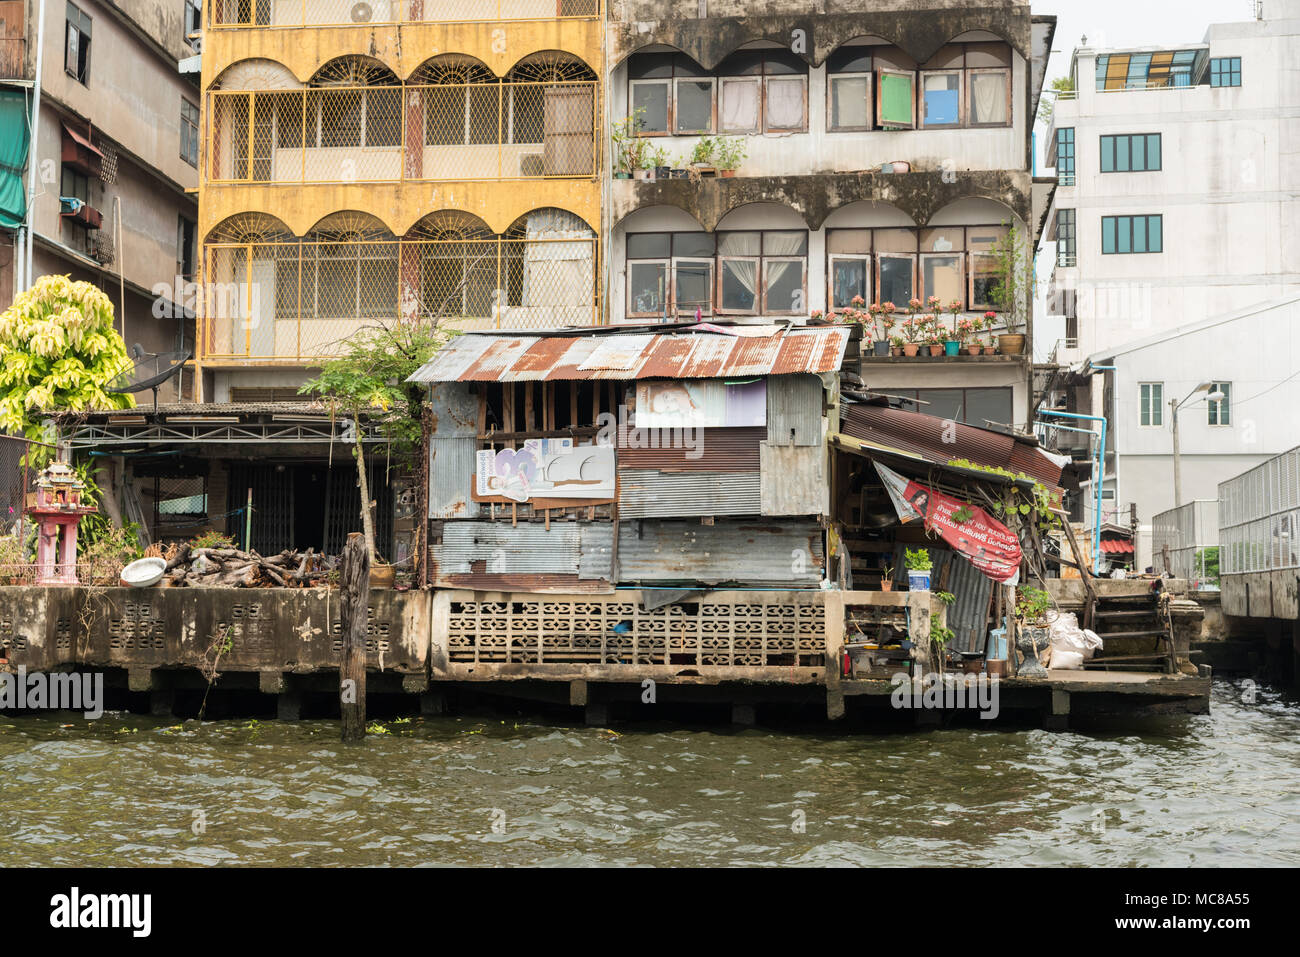 Rickety old buildings made from corrugated iron and wood alongside the Chao Phraya River in Bangkok, Thailand - Stock Image